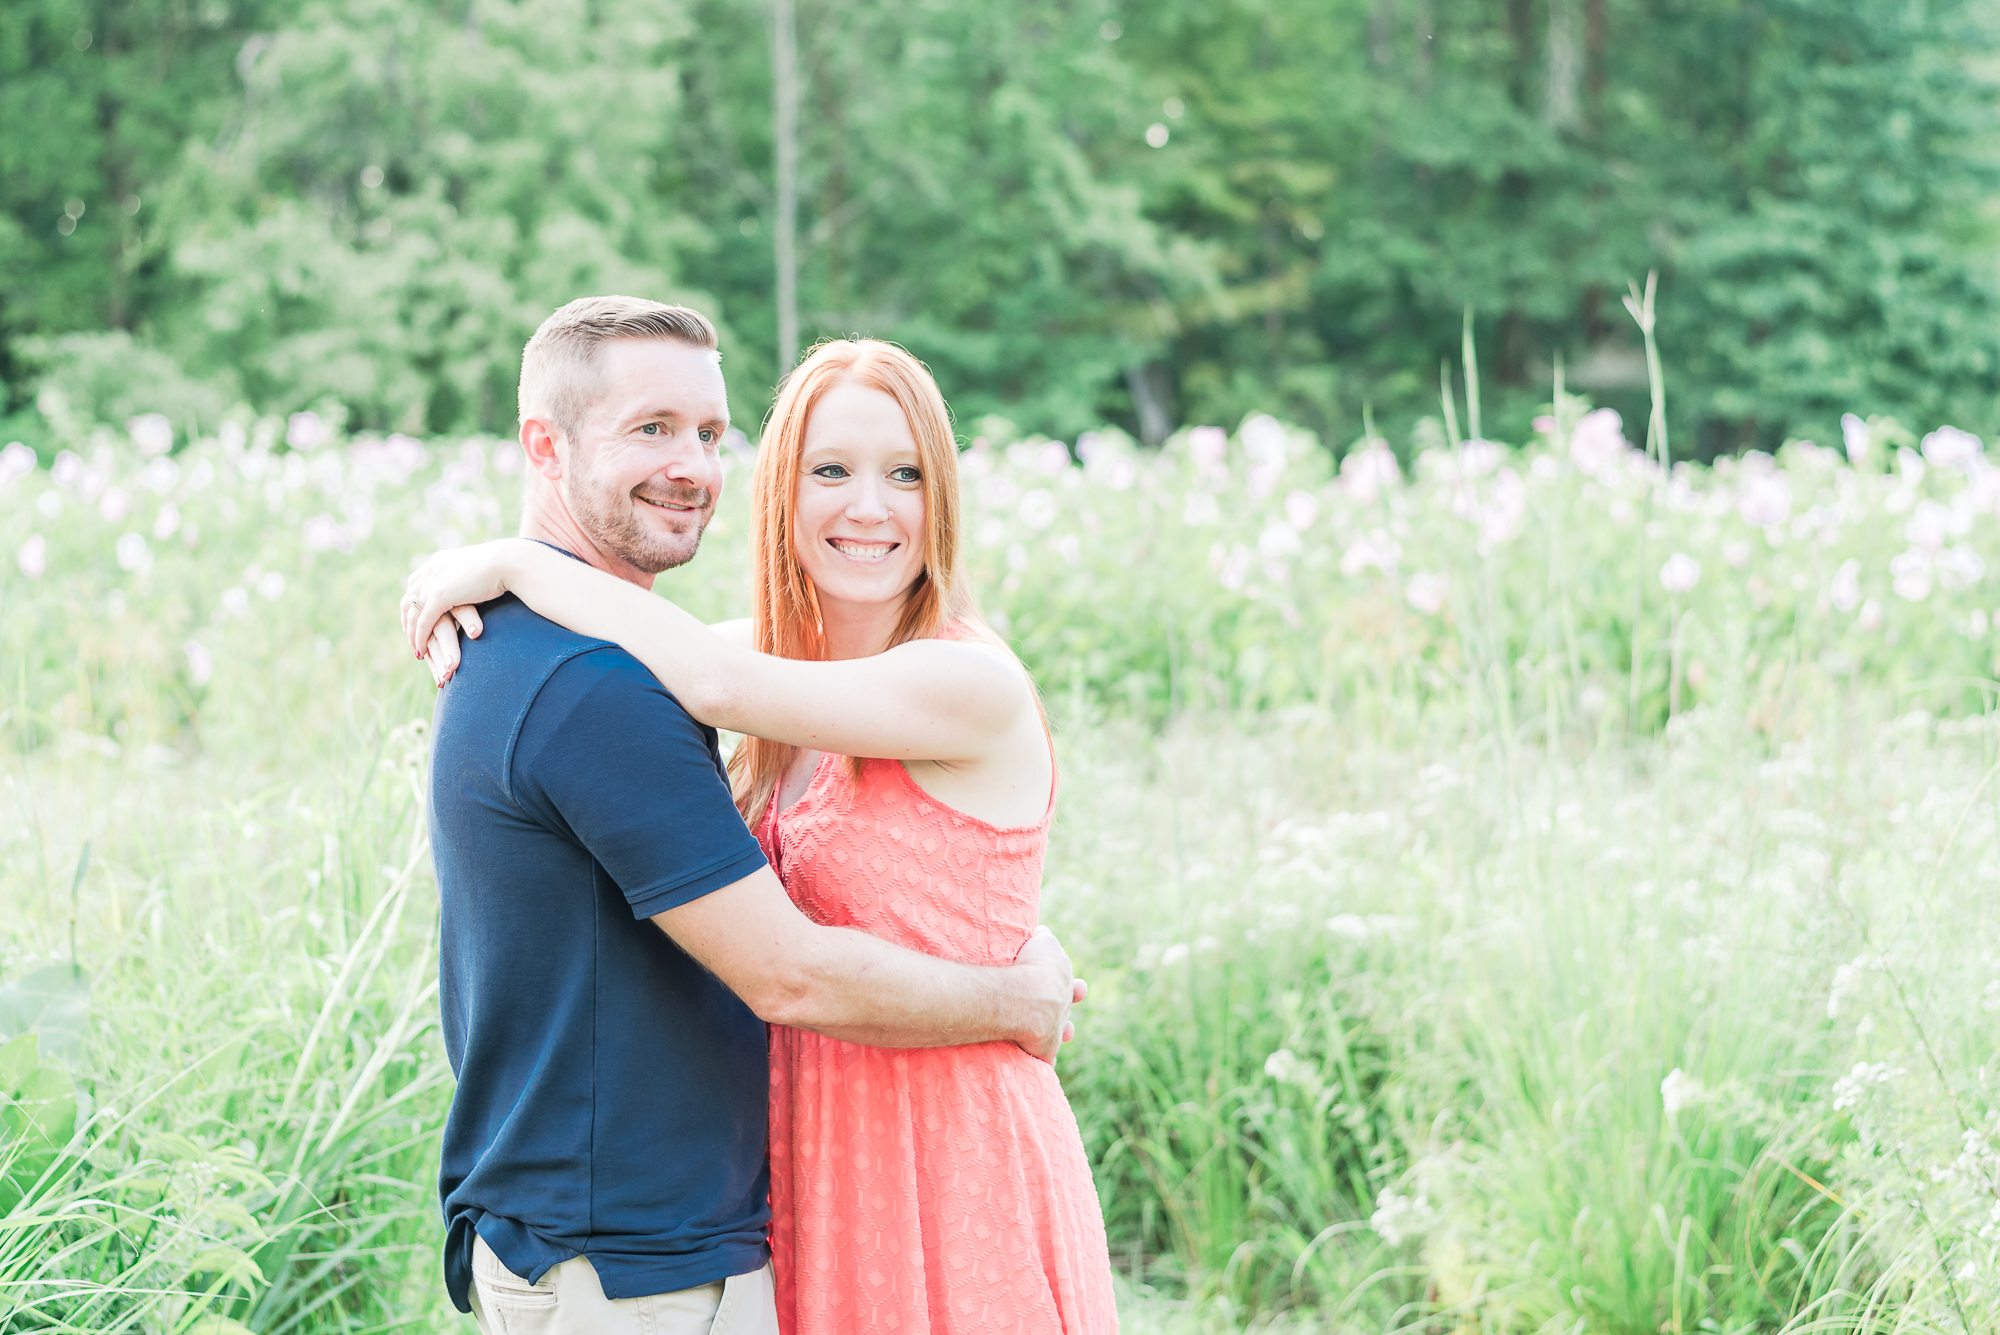 AB Favorites_Katy+Brian_Engagement Session_Brecksville Reservation_Brecksville_Ohio-9.jpg